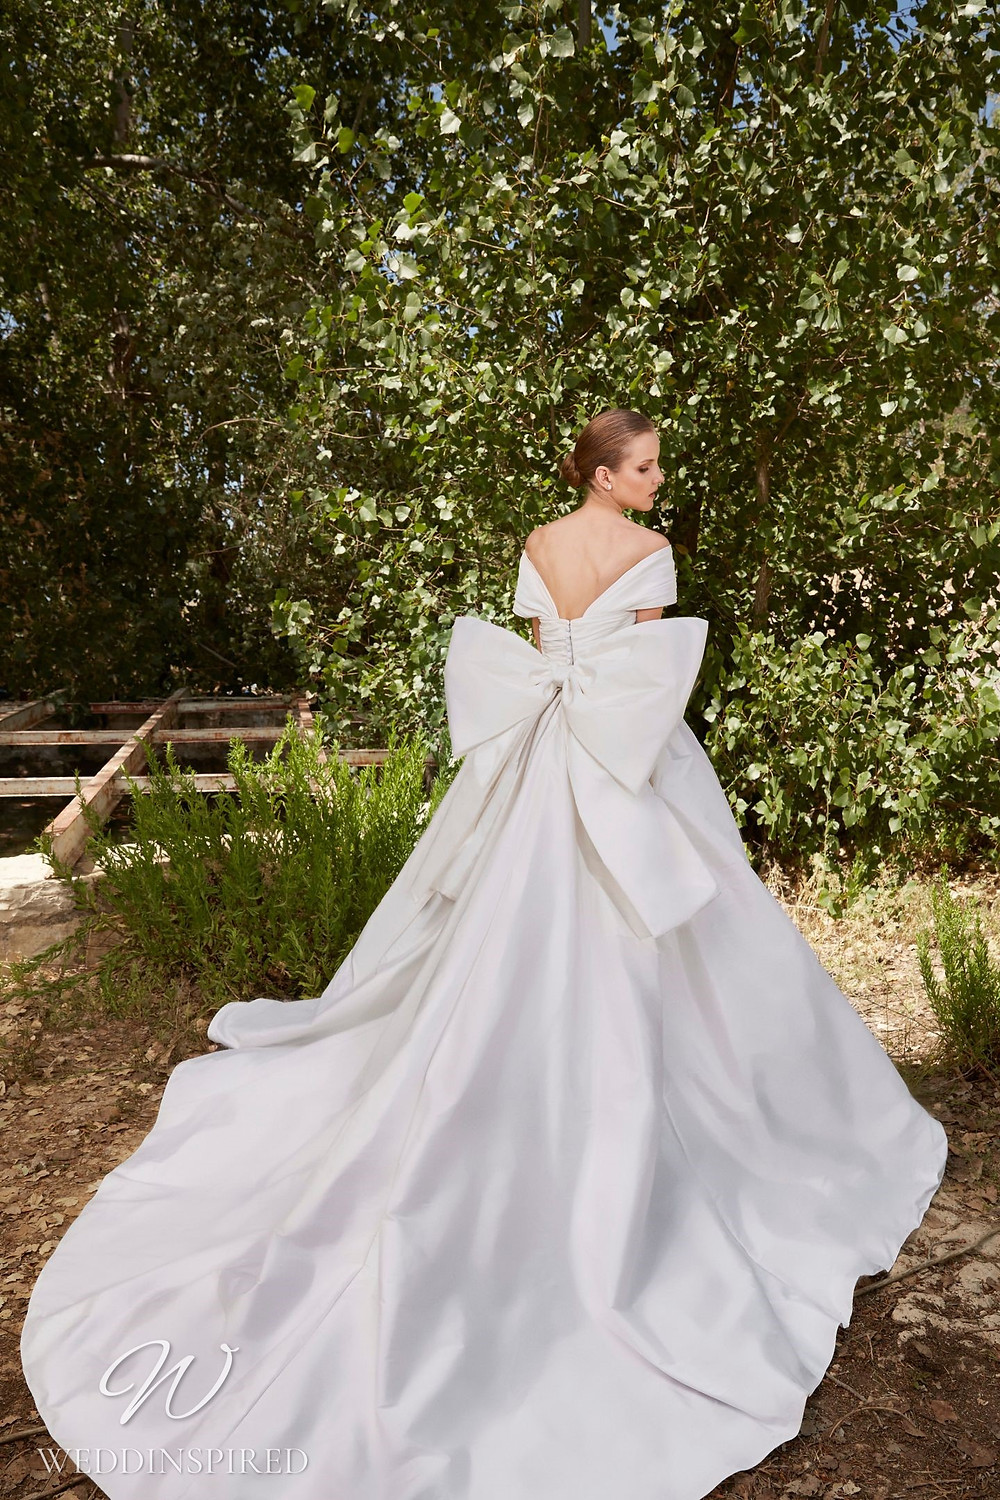 An Elie Saab Spring 2021 simple off the shoulder satin ball gown wedding dress with a big bow